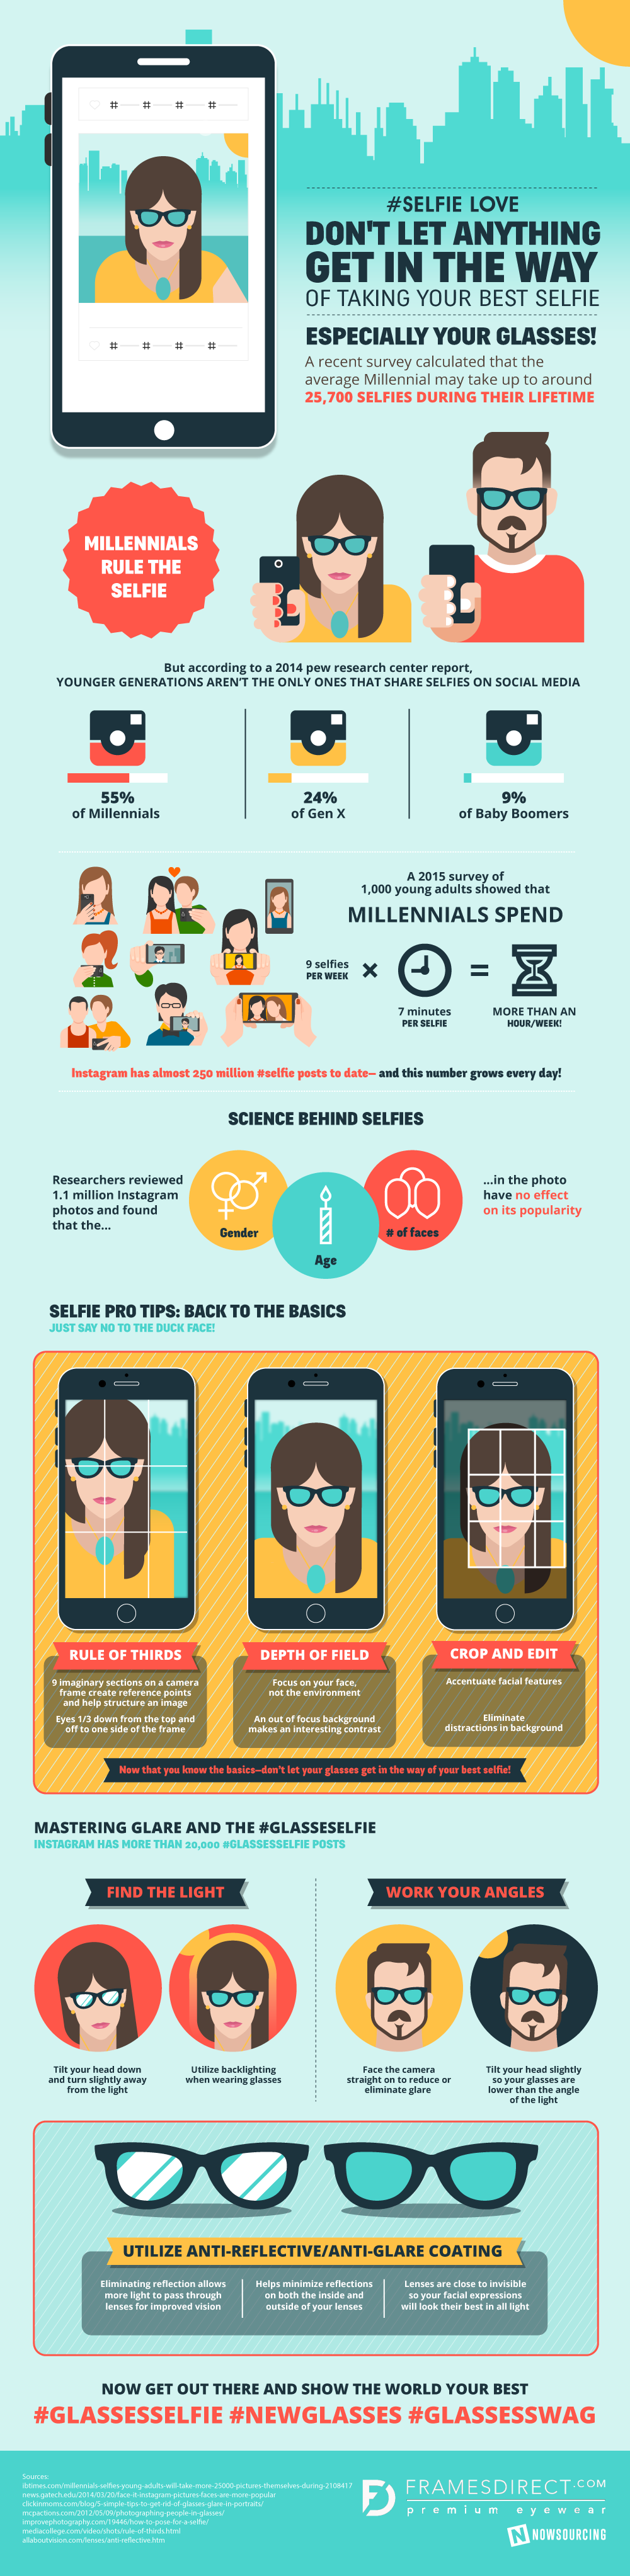 selfie is the latest-trend globally